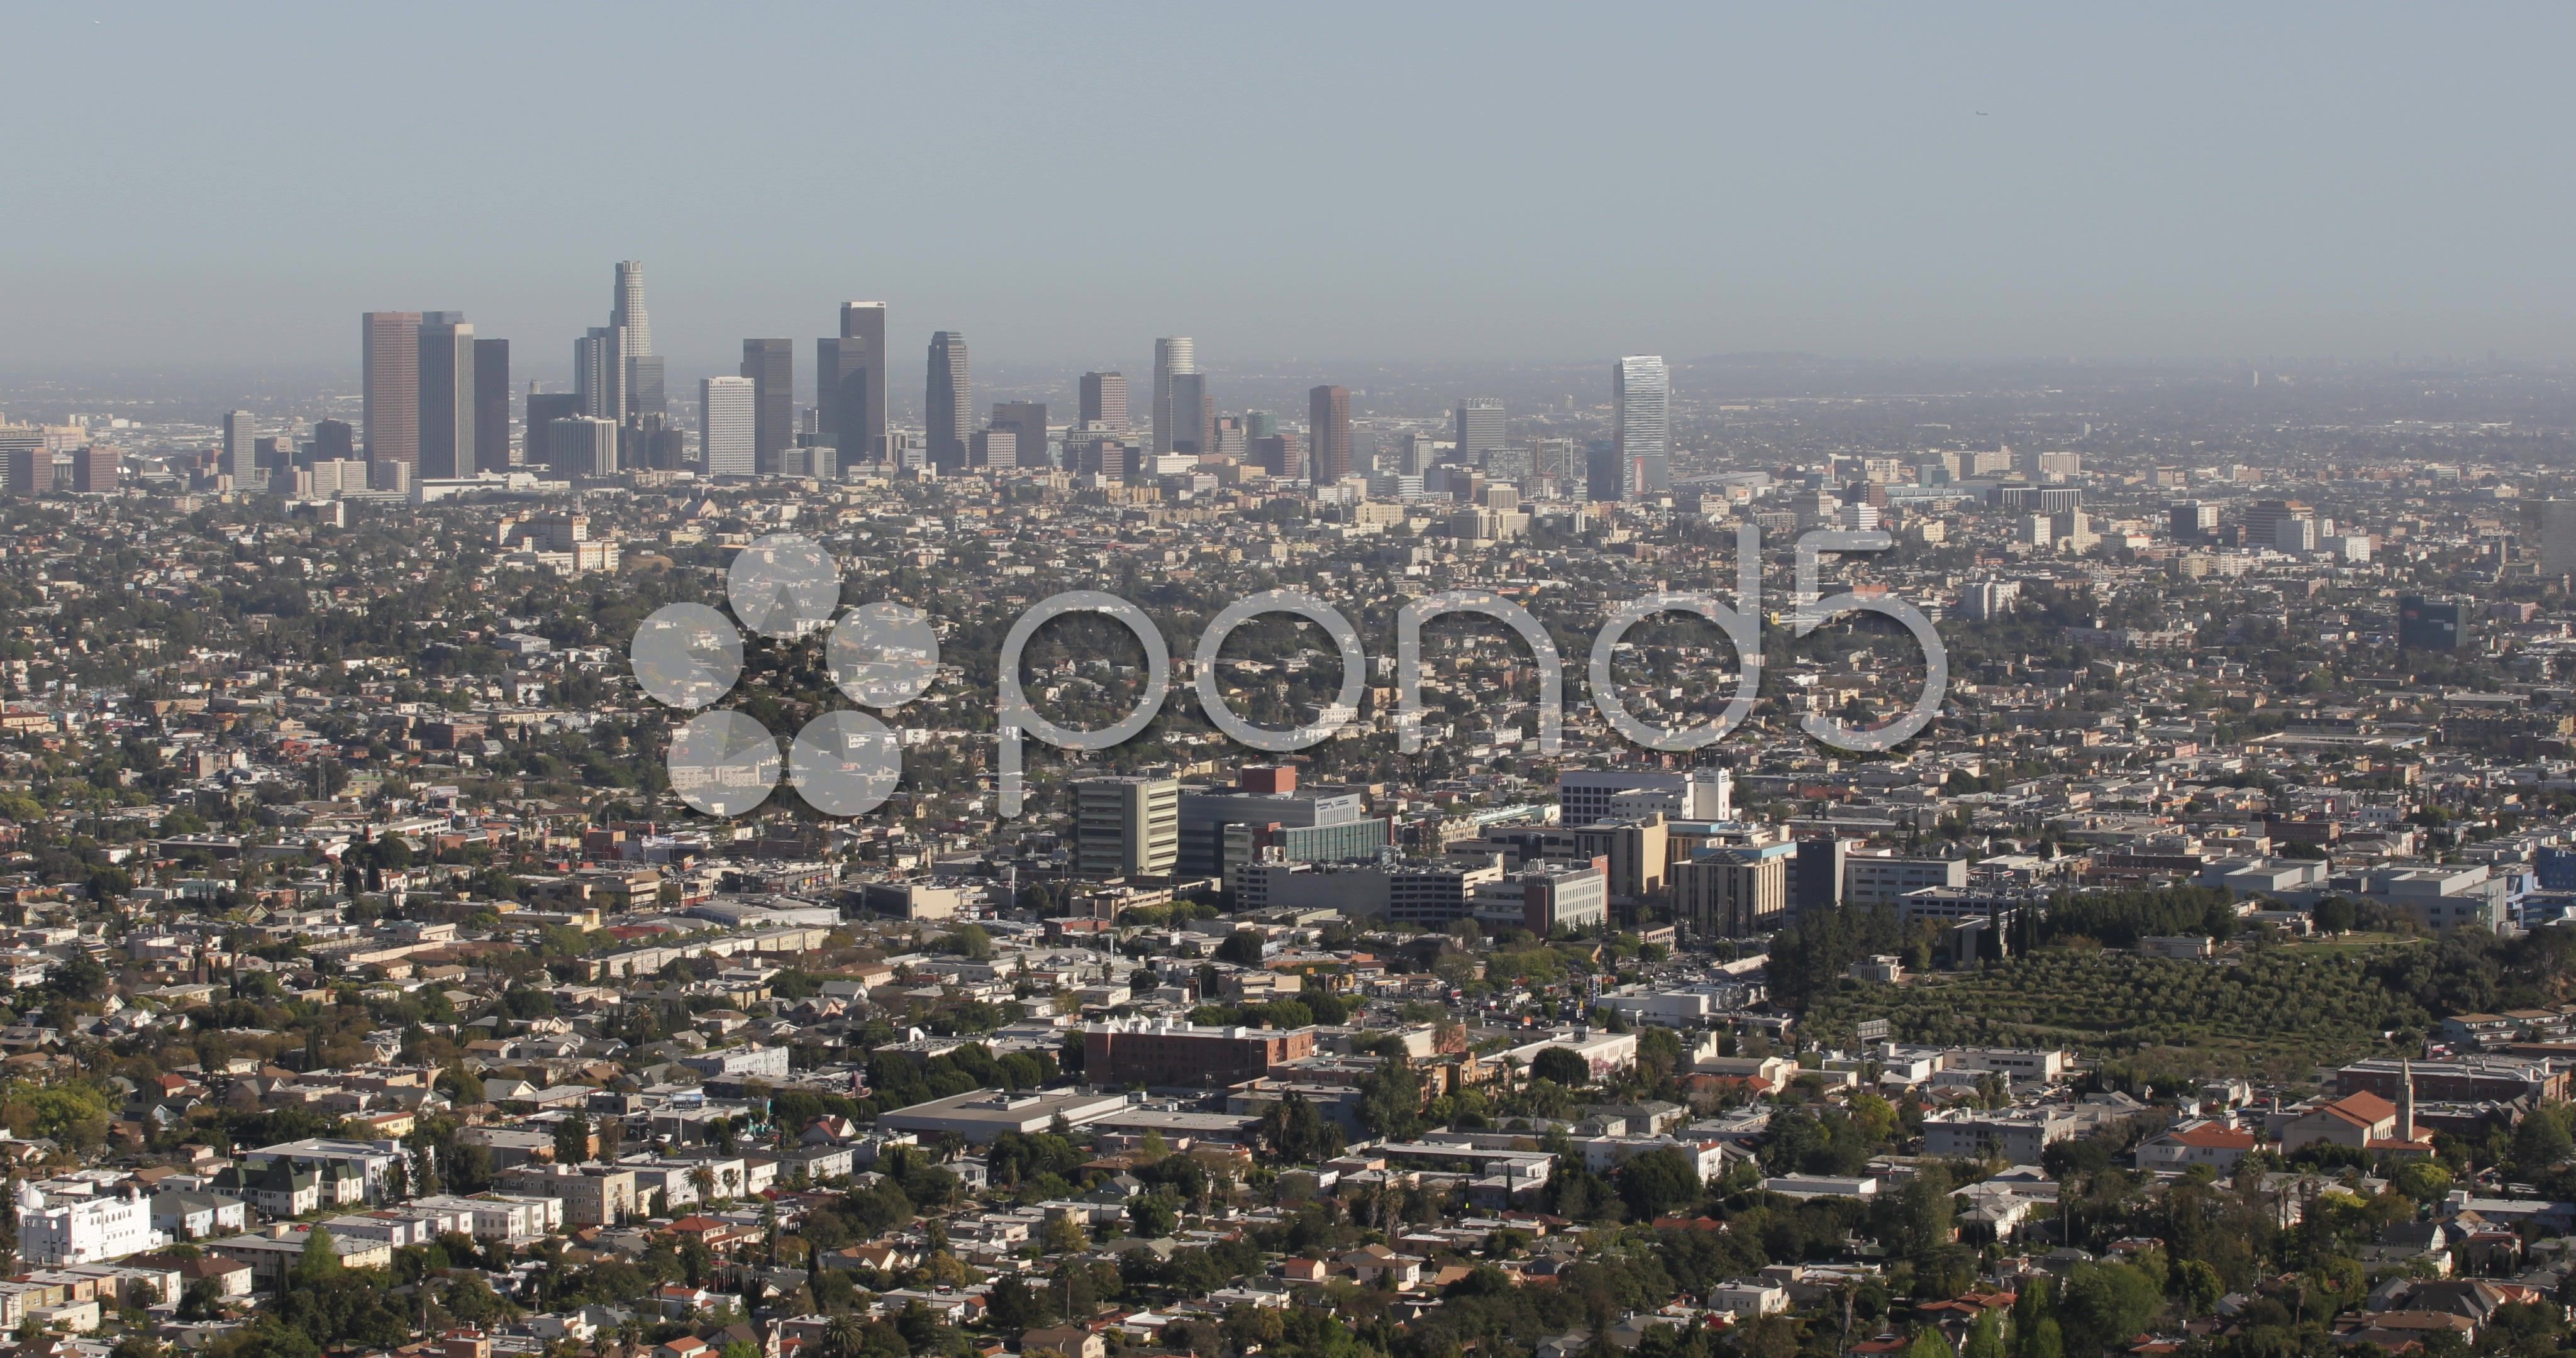 Ultra Hd 4k Aerial View Downtown Los Angeles Corporate Skyline Skyscrapers Stock Footage View Downtown Los Ultra Aerial View Skyline Downtown Los Angeles